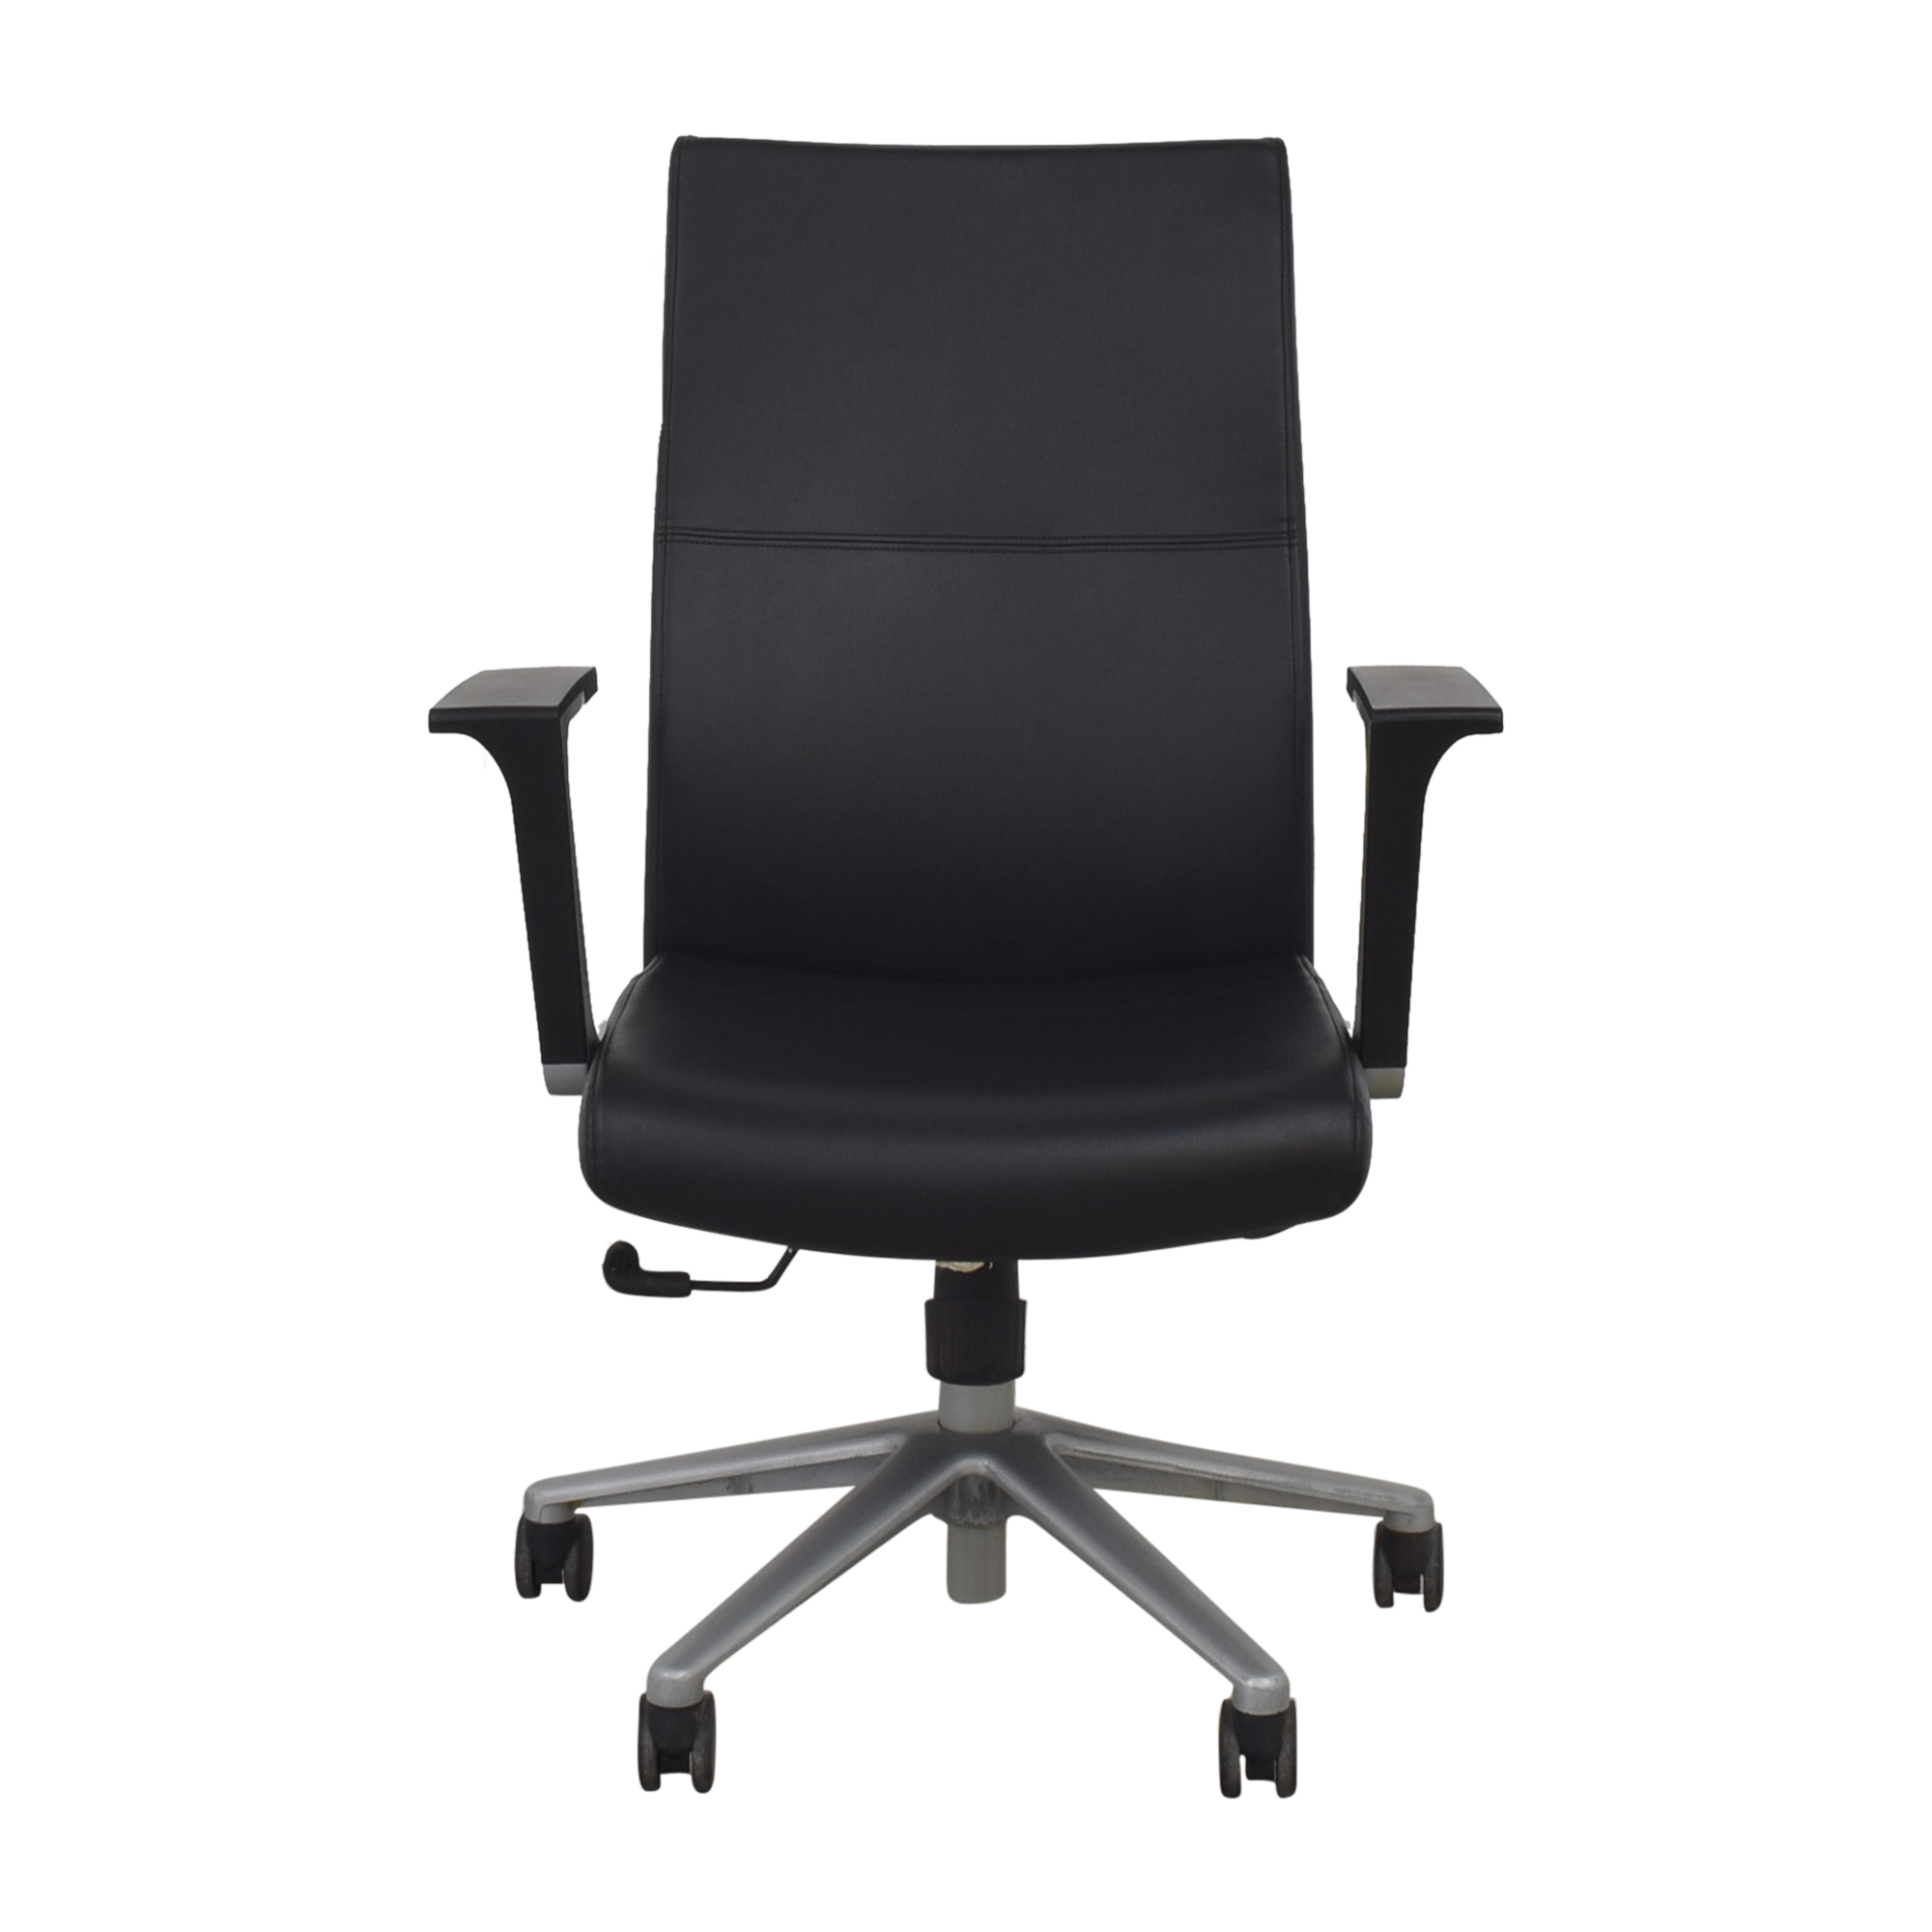 SitOnIt SitOnIt Prava Office Chair Chairs